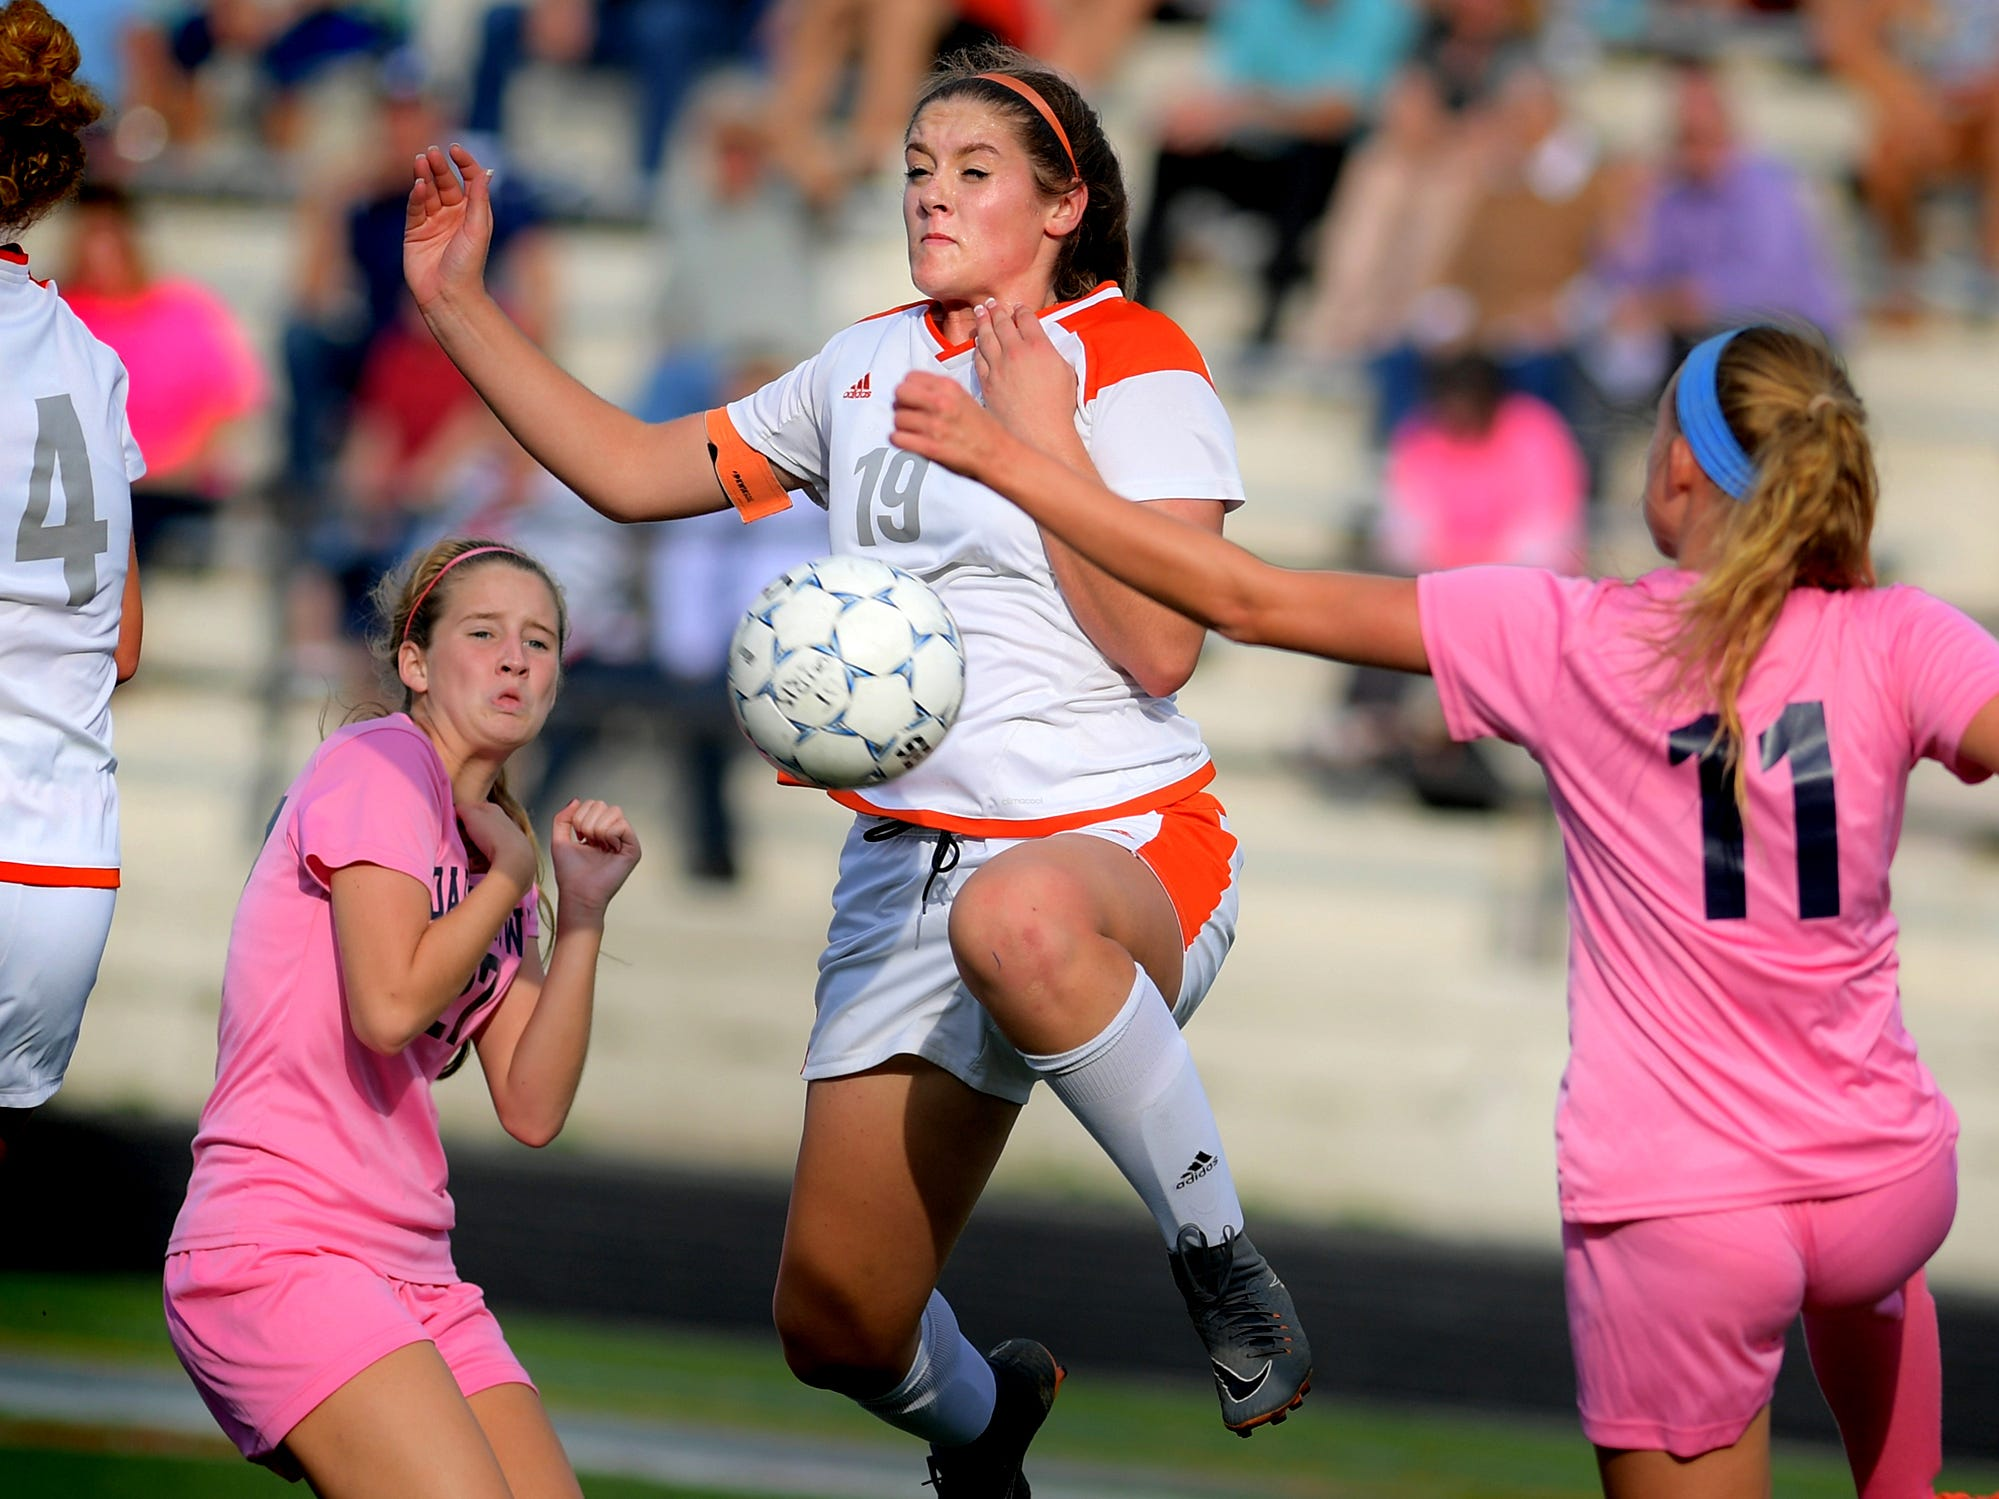 Central York's Hannah Ferguson takes control of a loose ball with Dallastown's Myra Streibig, left, and Lily Jamison (11) defending during action at Dallastown Tuesday, Oct. 9, 2018. Dallastown won 1-0. Bill Kalina photo